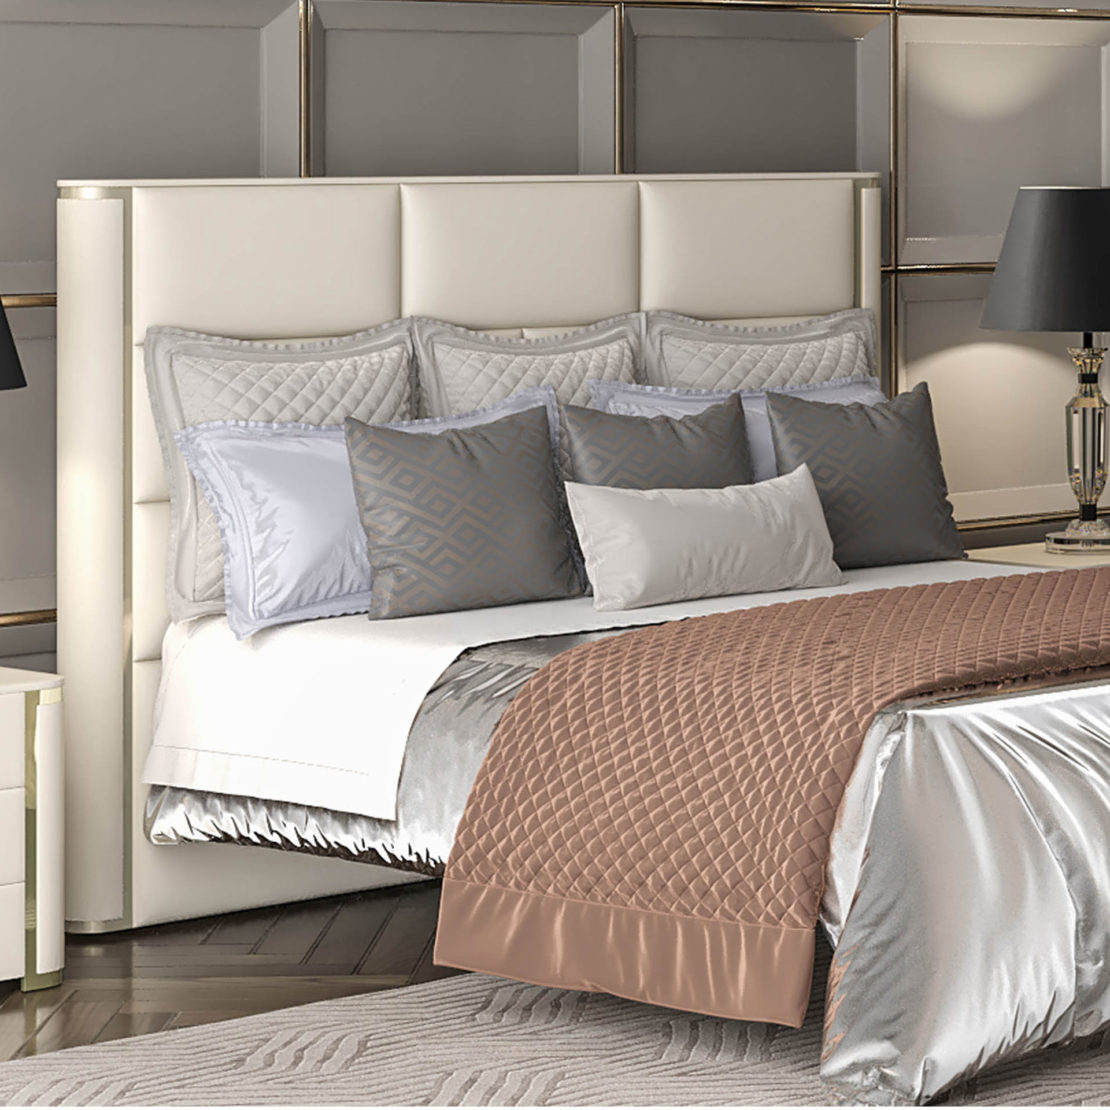 Modern Leather Upholstered Bed With Chrome Detail